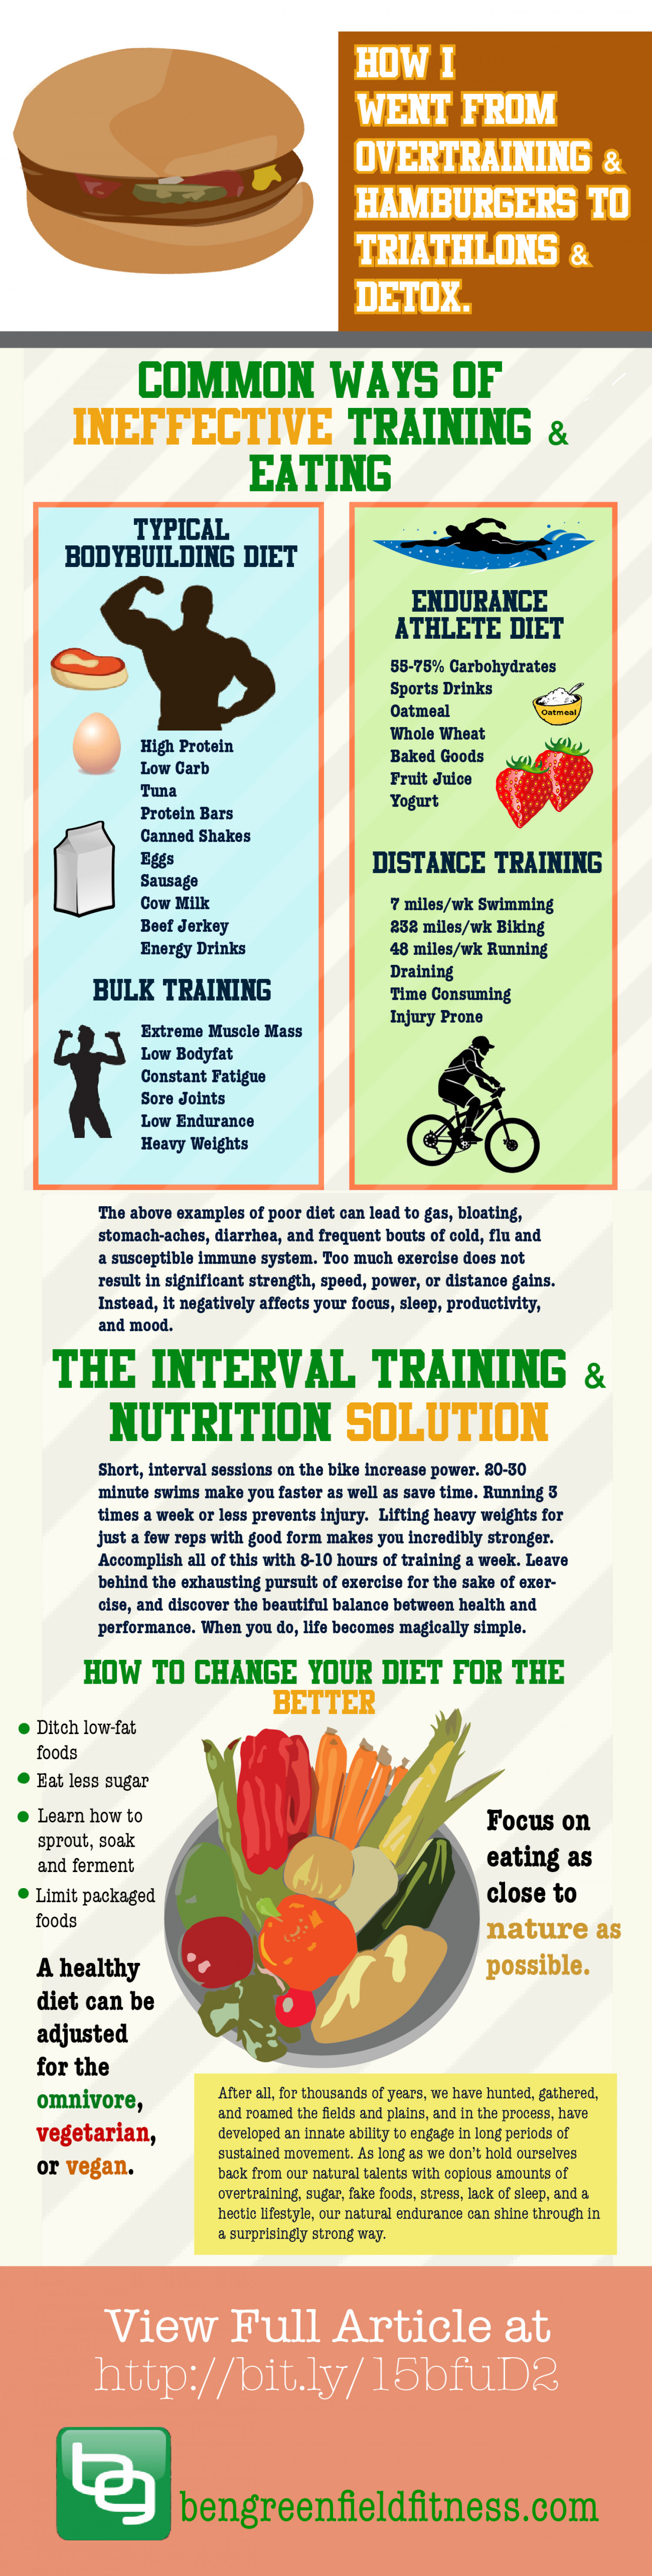 How I went from overeating and hamburgers to triathlons and detox  Infographic